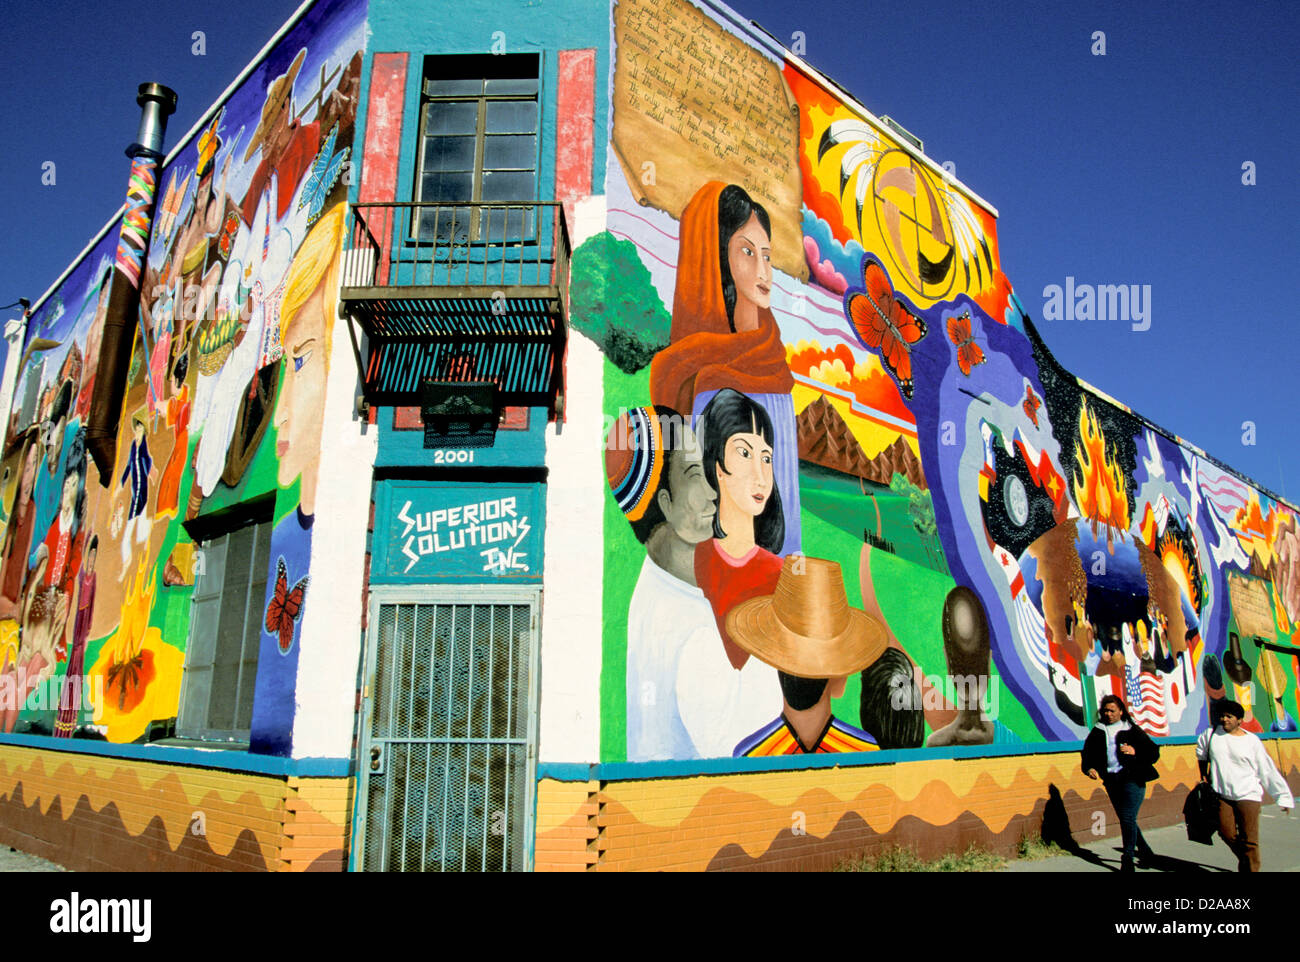 Texas, El Paso. Mural On Sides Of Building. - Stock Image